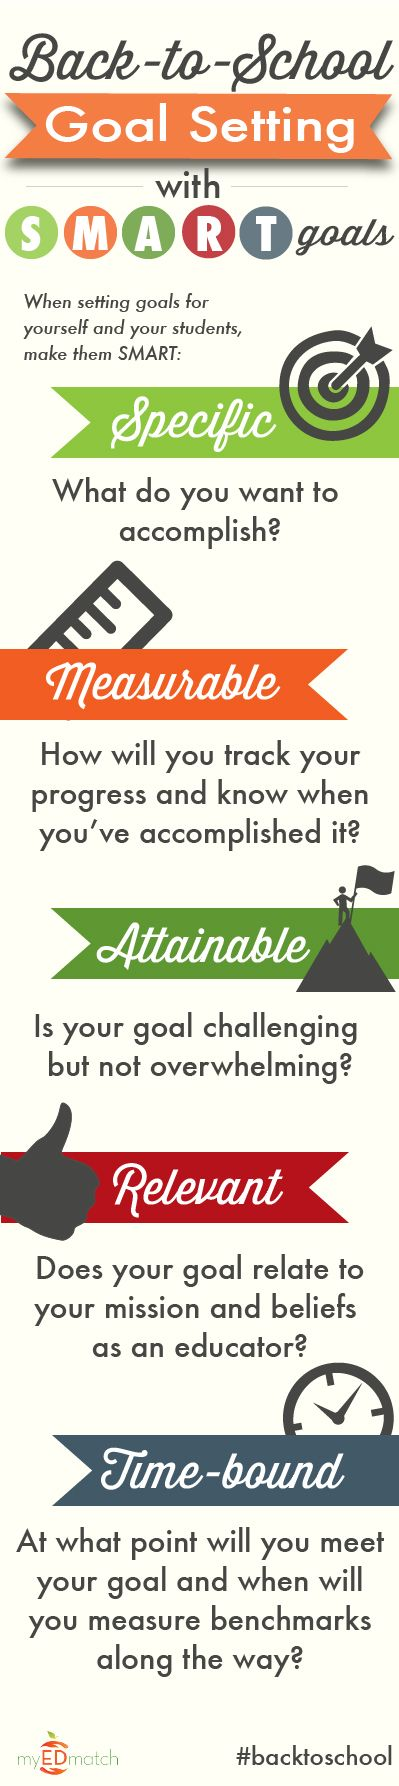 20 best Goal Setting Med Sociology images on Pinterest School - sample goal tracking